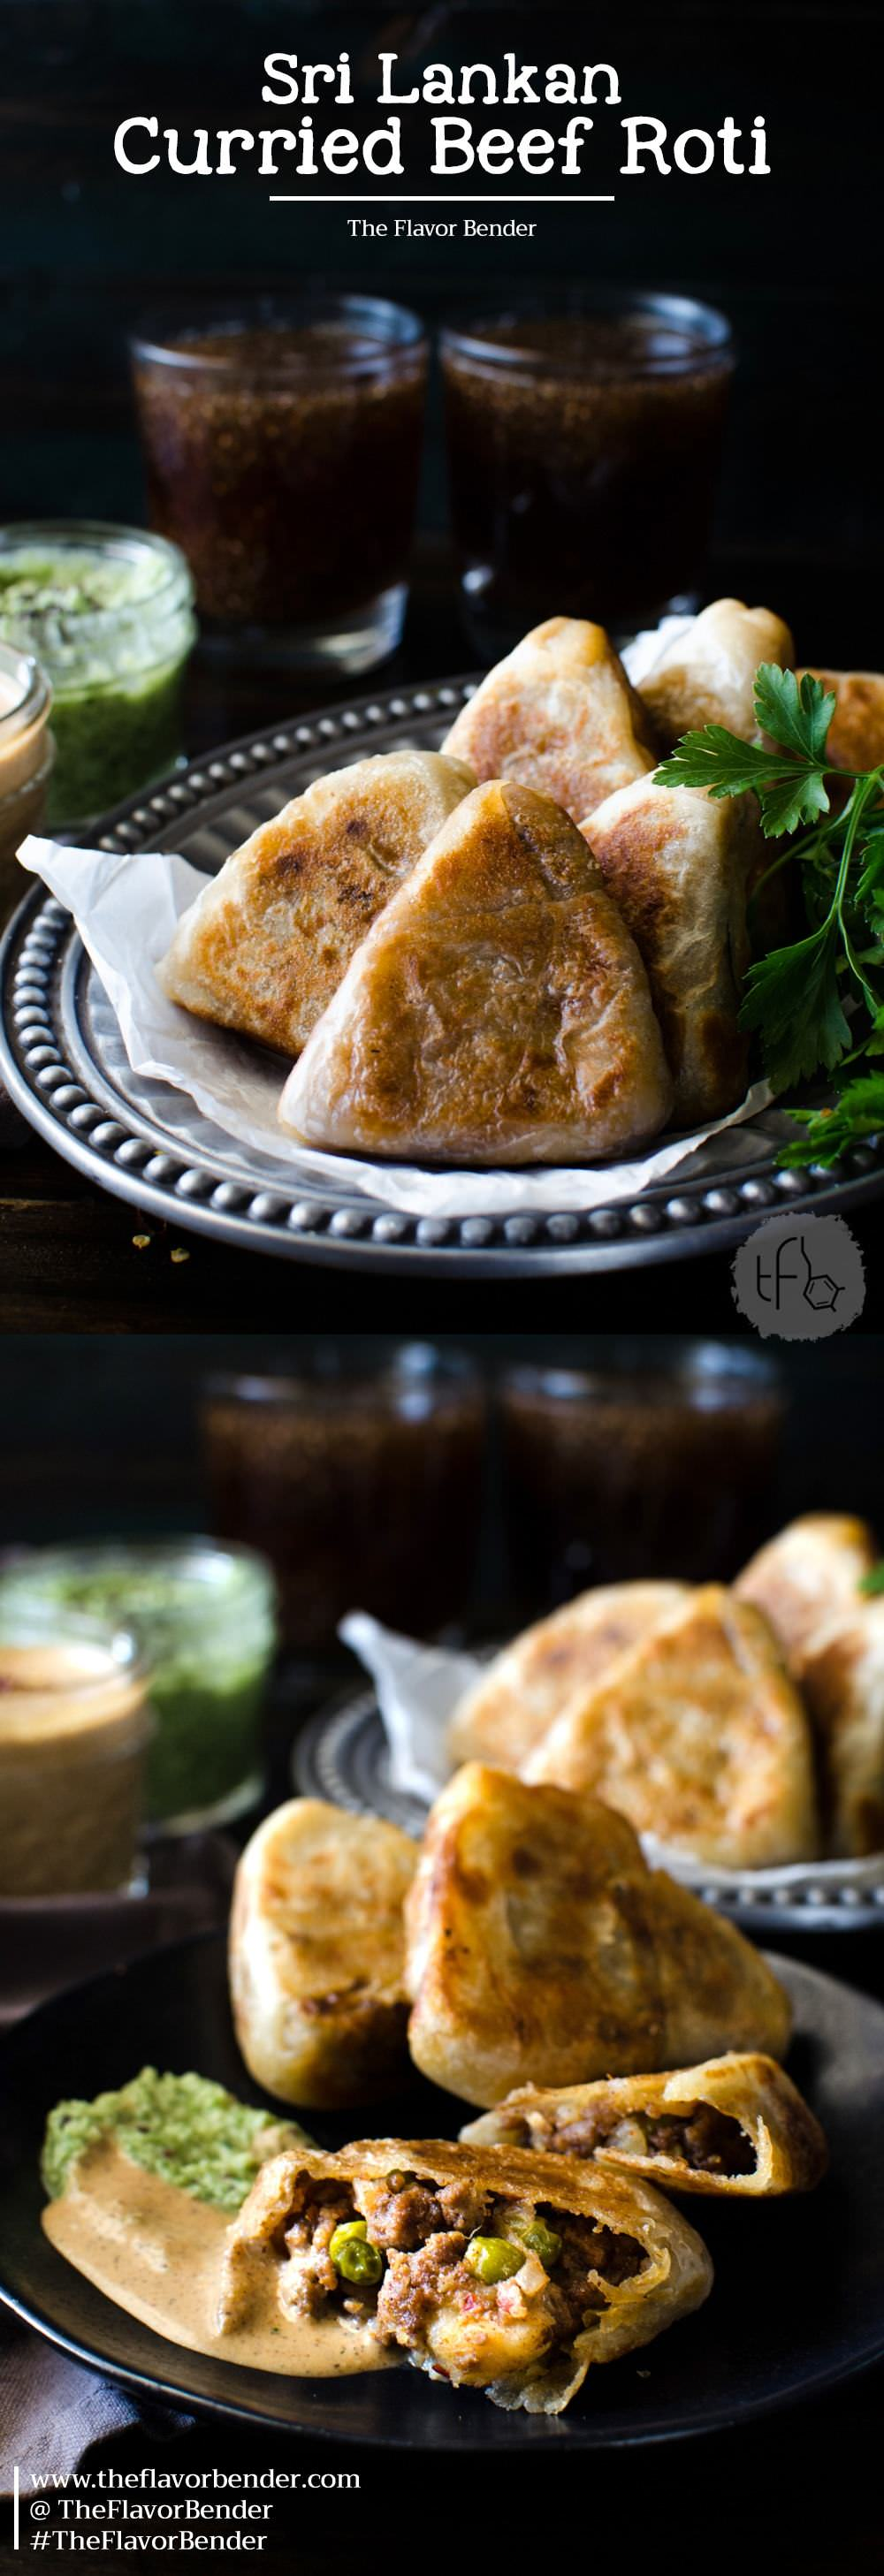 Curried Beef Roti - Snack sized Beef Stuffed Godhamba roti, a popular Sri Lankan snack, perfect for appetizers or parties